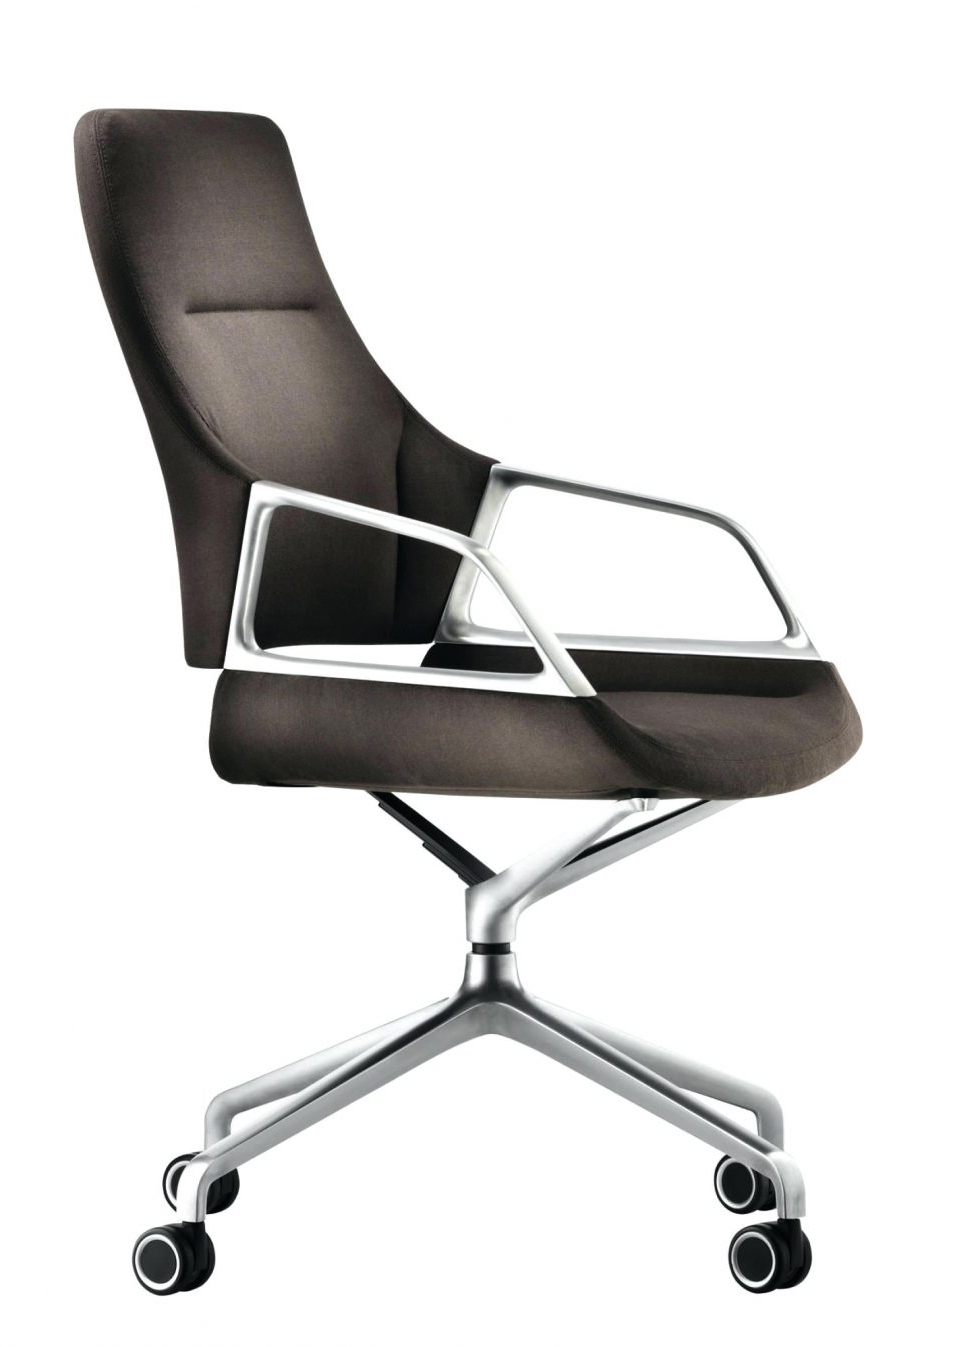 2018 German Executive Office Chairs Inside Articles With German Made Office Furniture Tag: German Office Chairs (View 1 of 20)